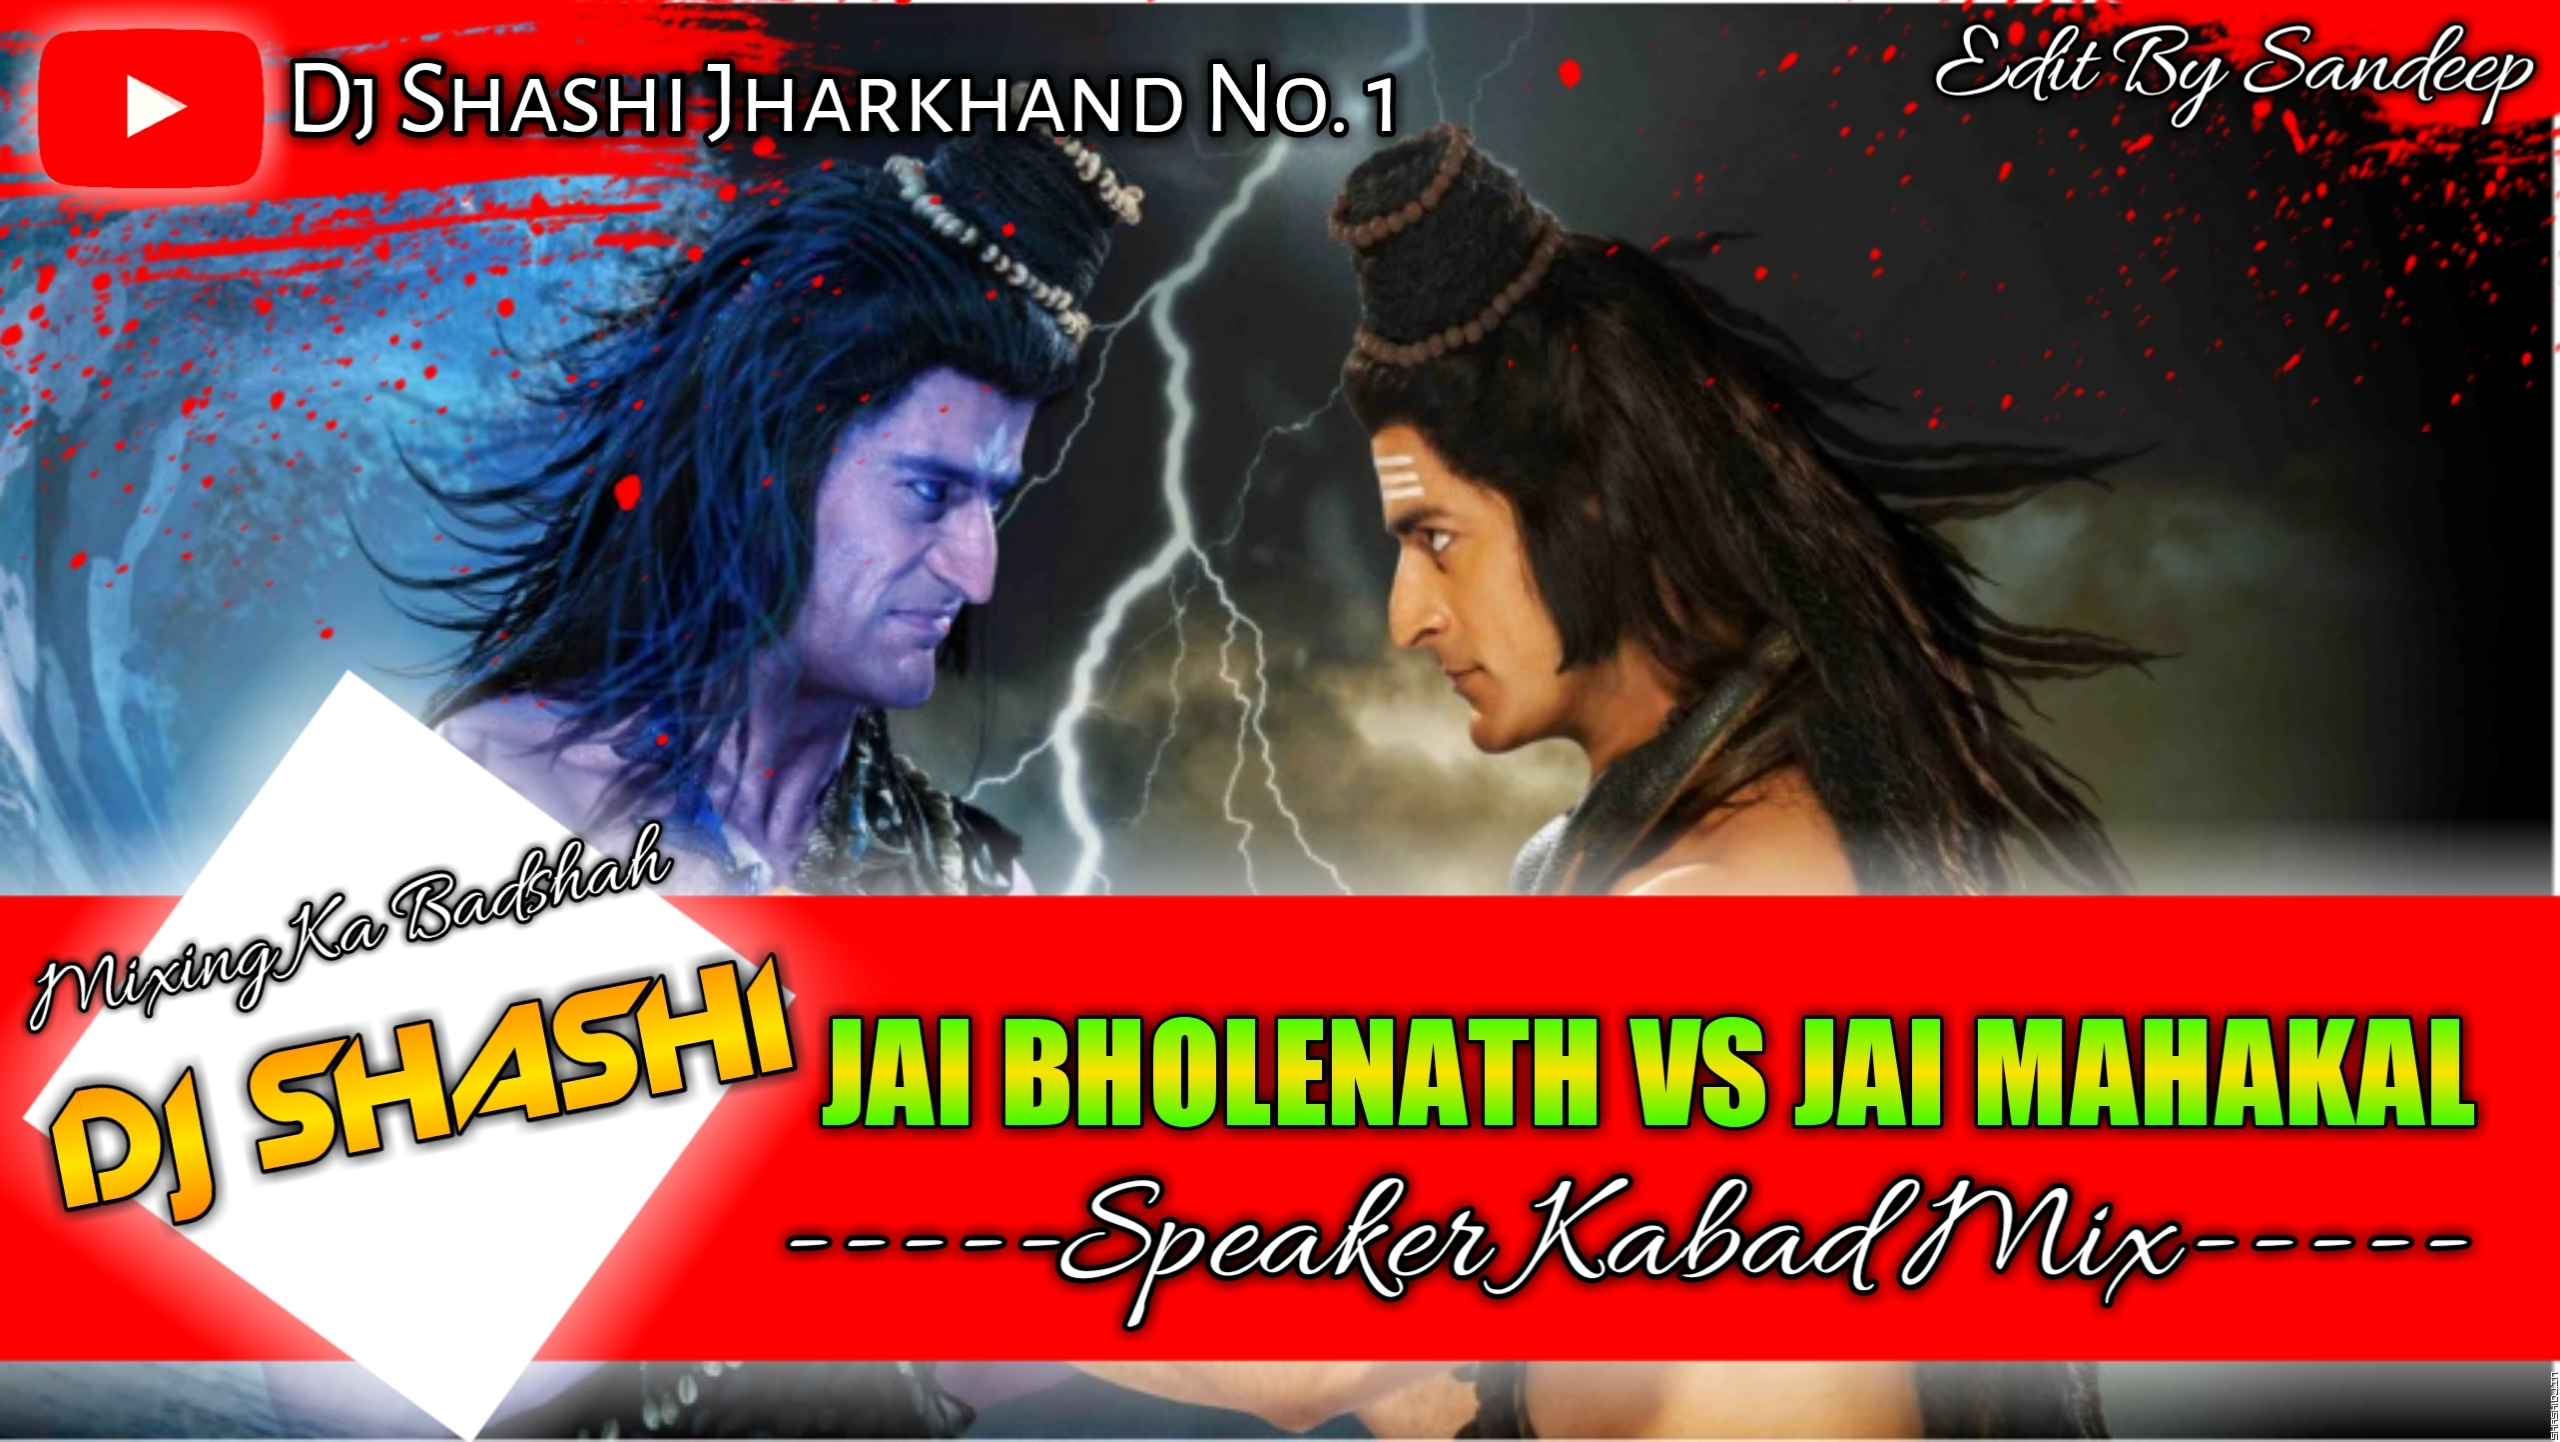 Jai Mahakal Vs Jai BholenathGarda Kabad Mix By Dj Shashi.mp3